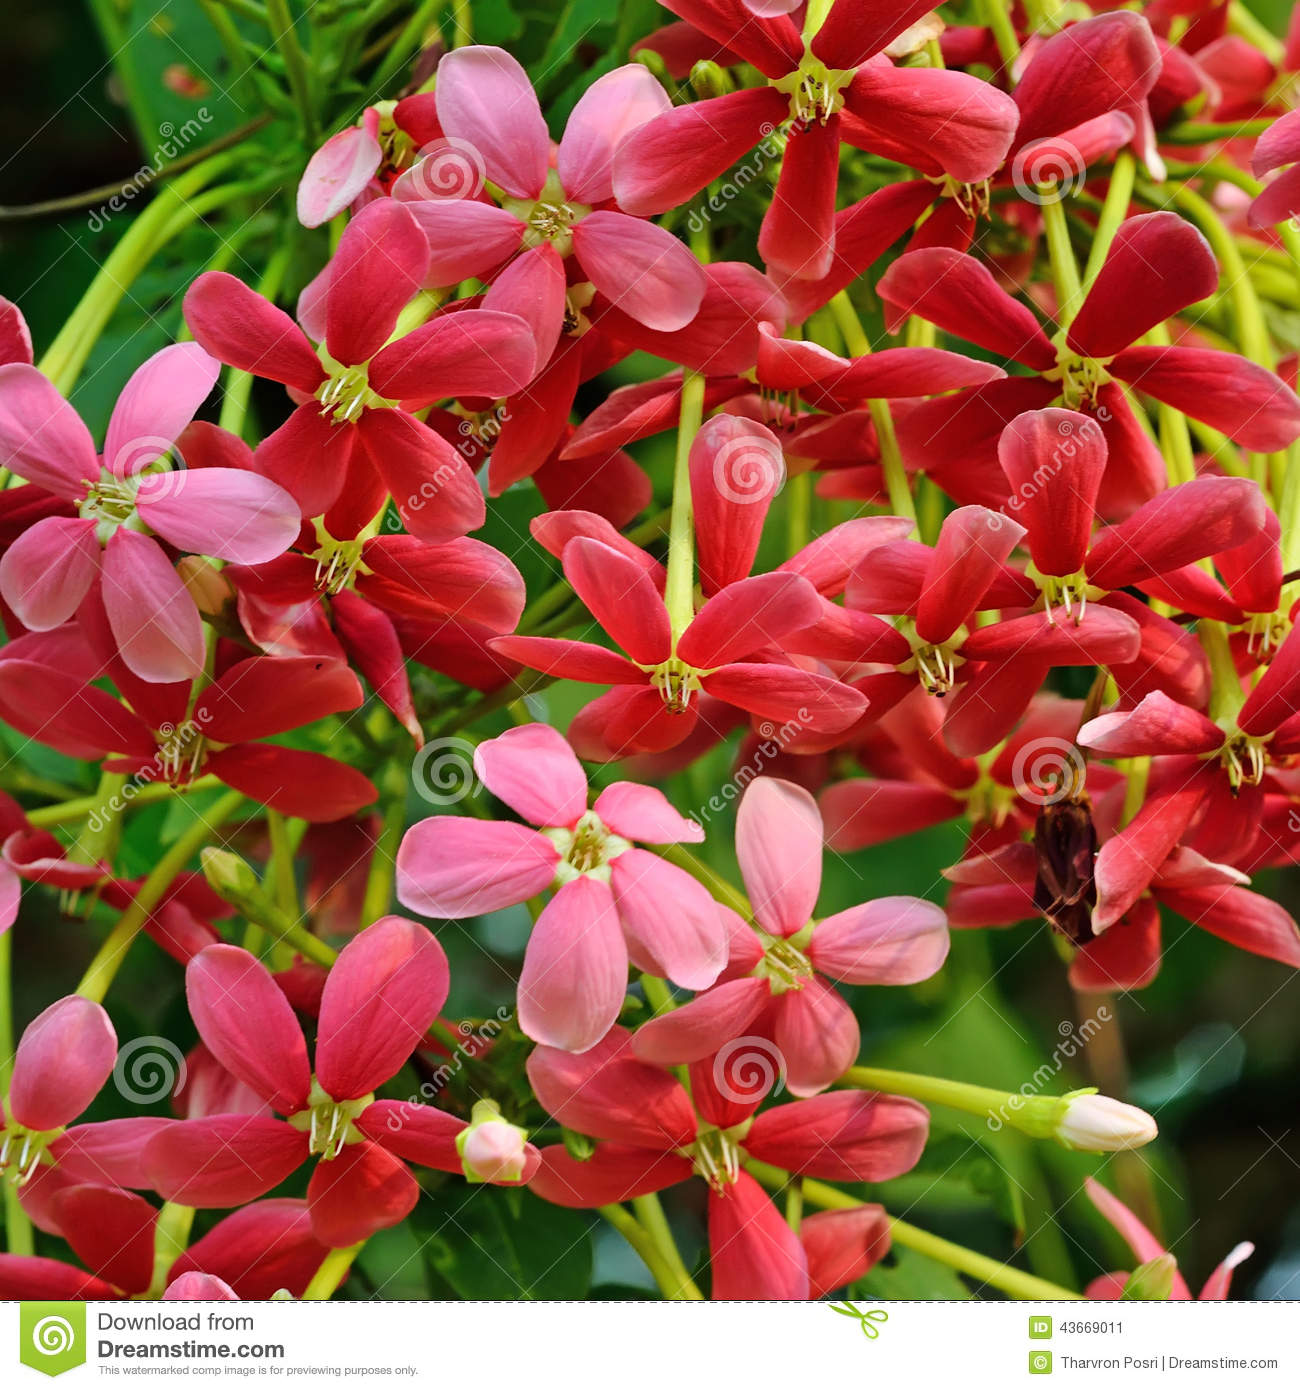 Fleur rouge de plante grimpante de rangoon photo stock image 43669011 - Plantes a fleurs rouges ...